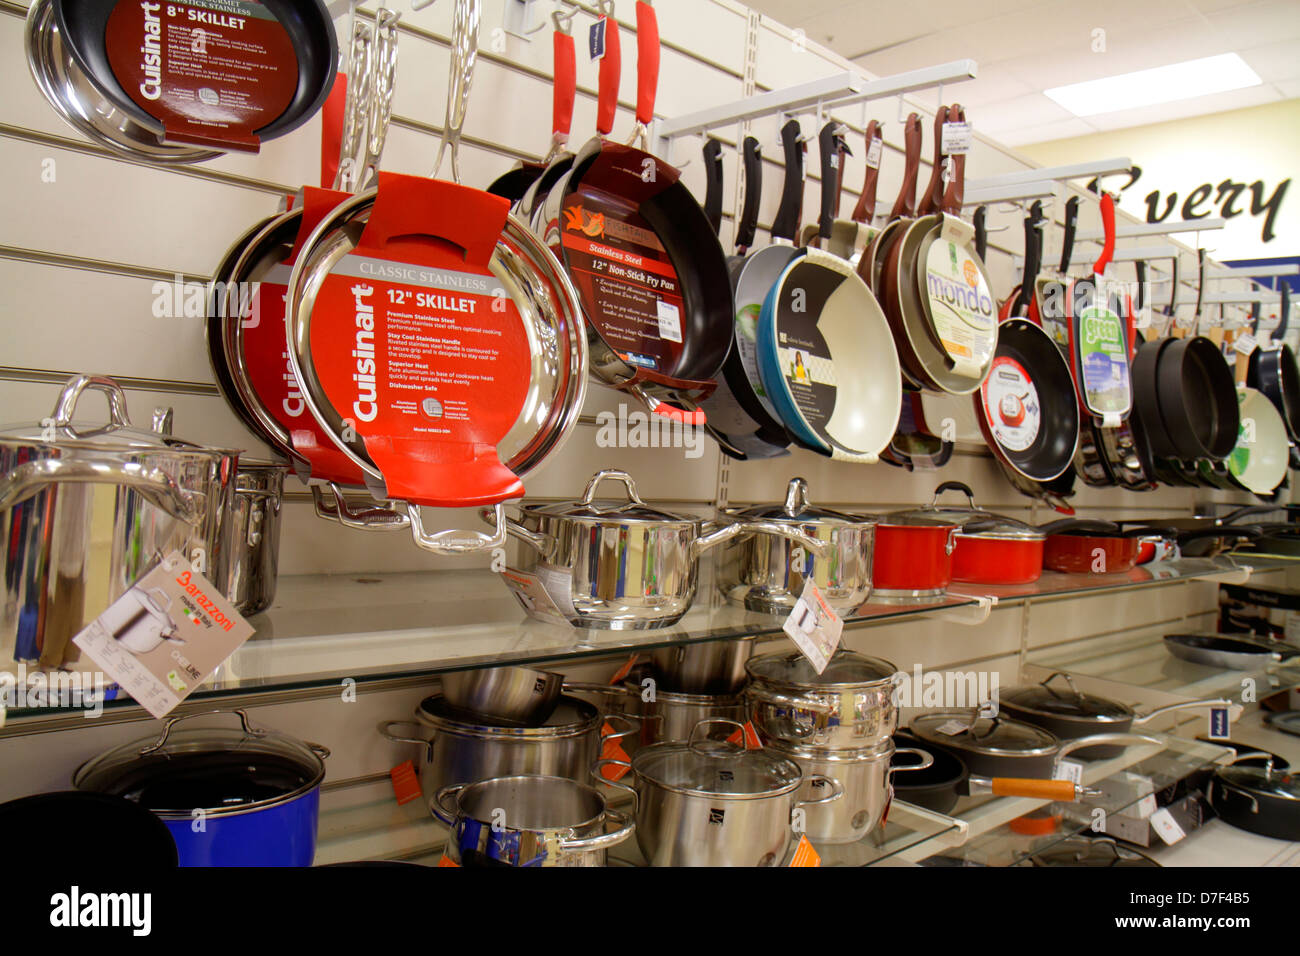 Miami Florida Marshallu0027s Discount Department Store Shopping Retail Display  For Sale Pans Cookware Pots Skillet Kitchen